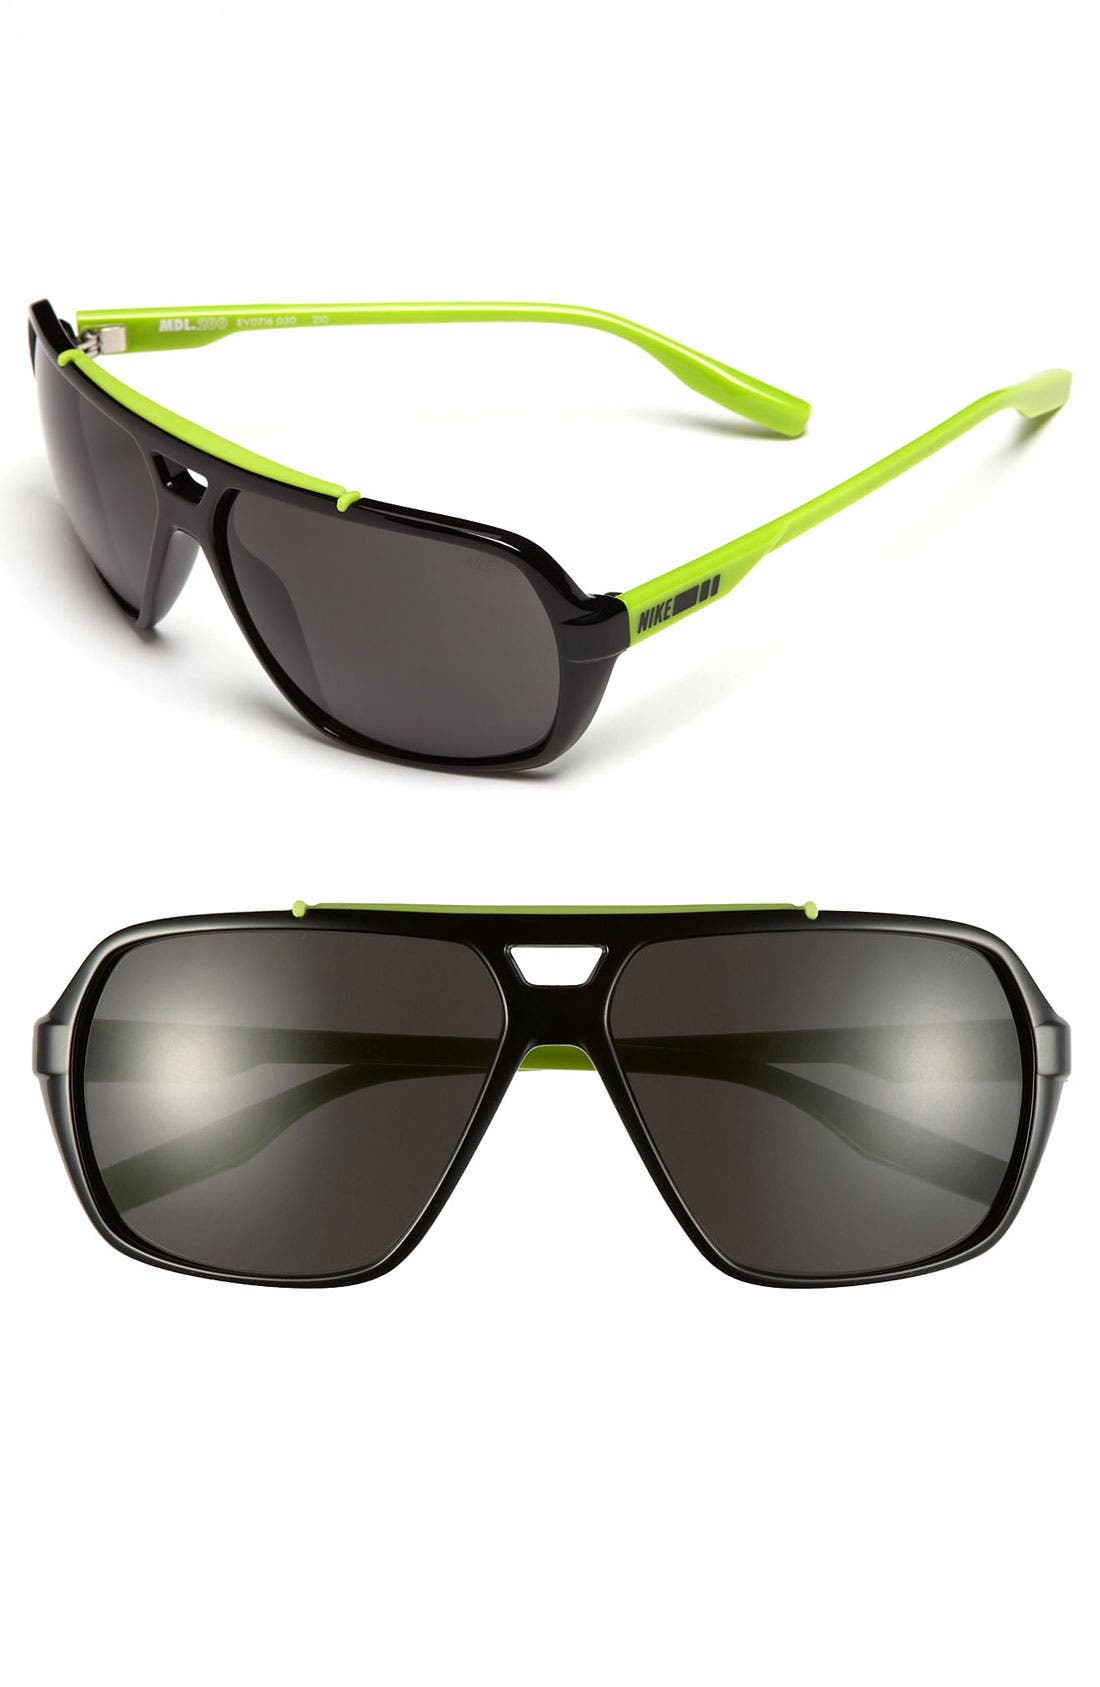 Main Image - Nike 61mm Aviator Sunglasses